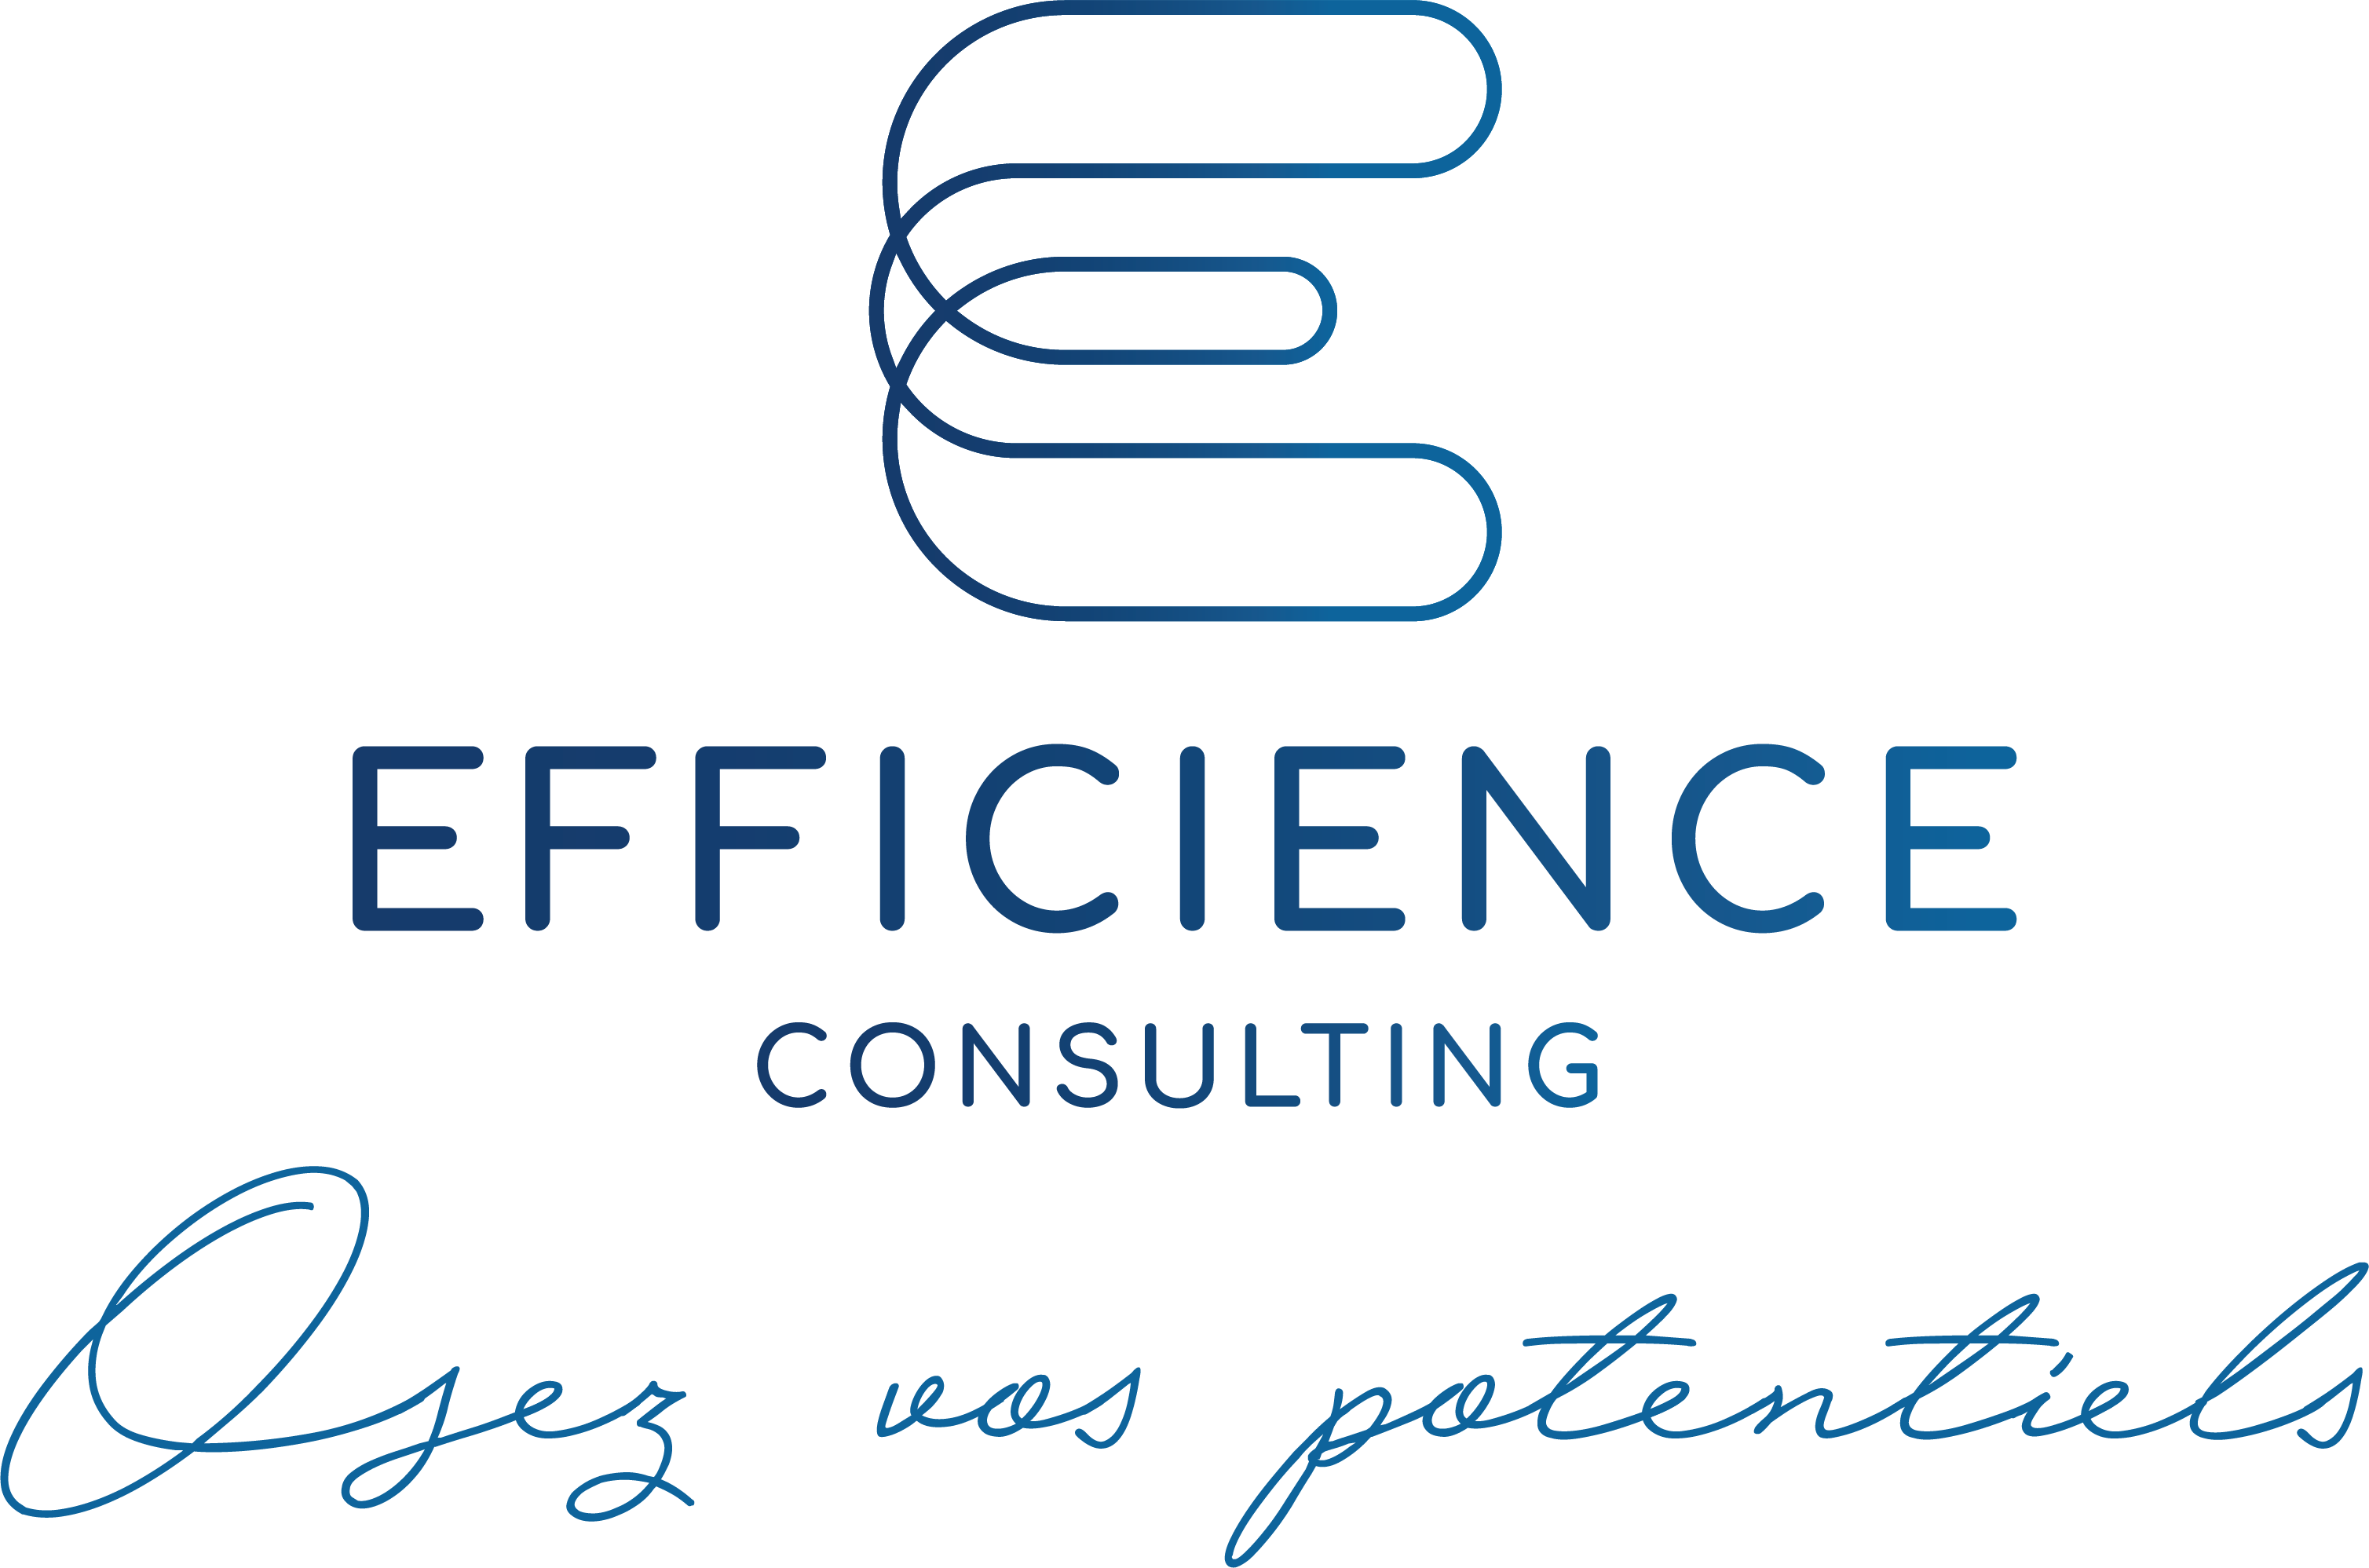 EFFICIENCE CONSULTING